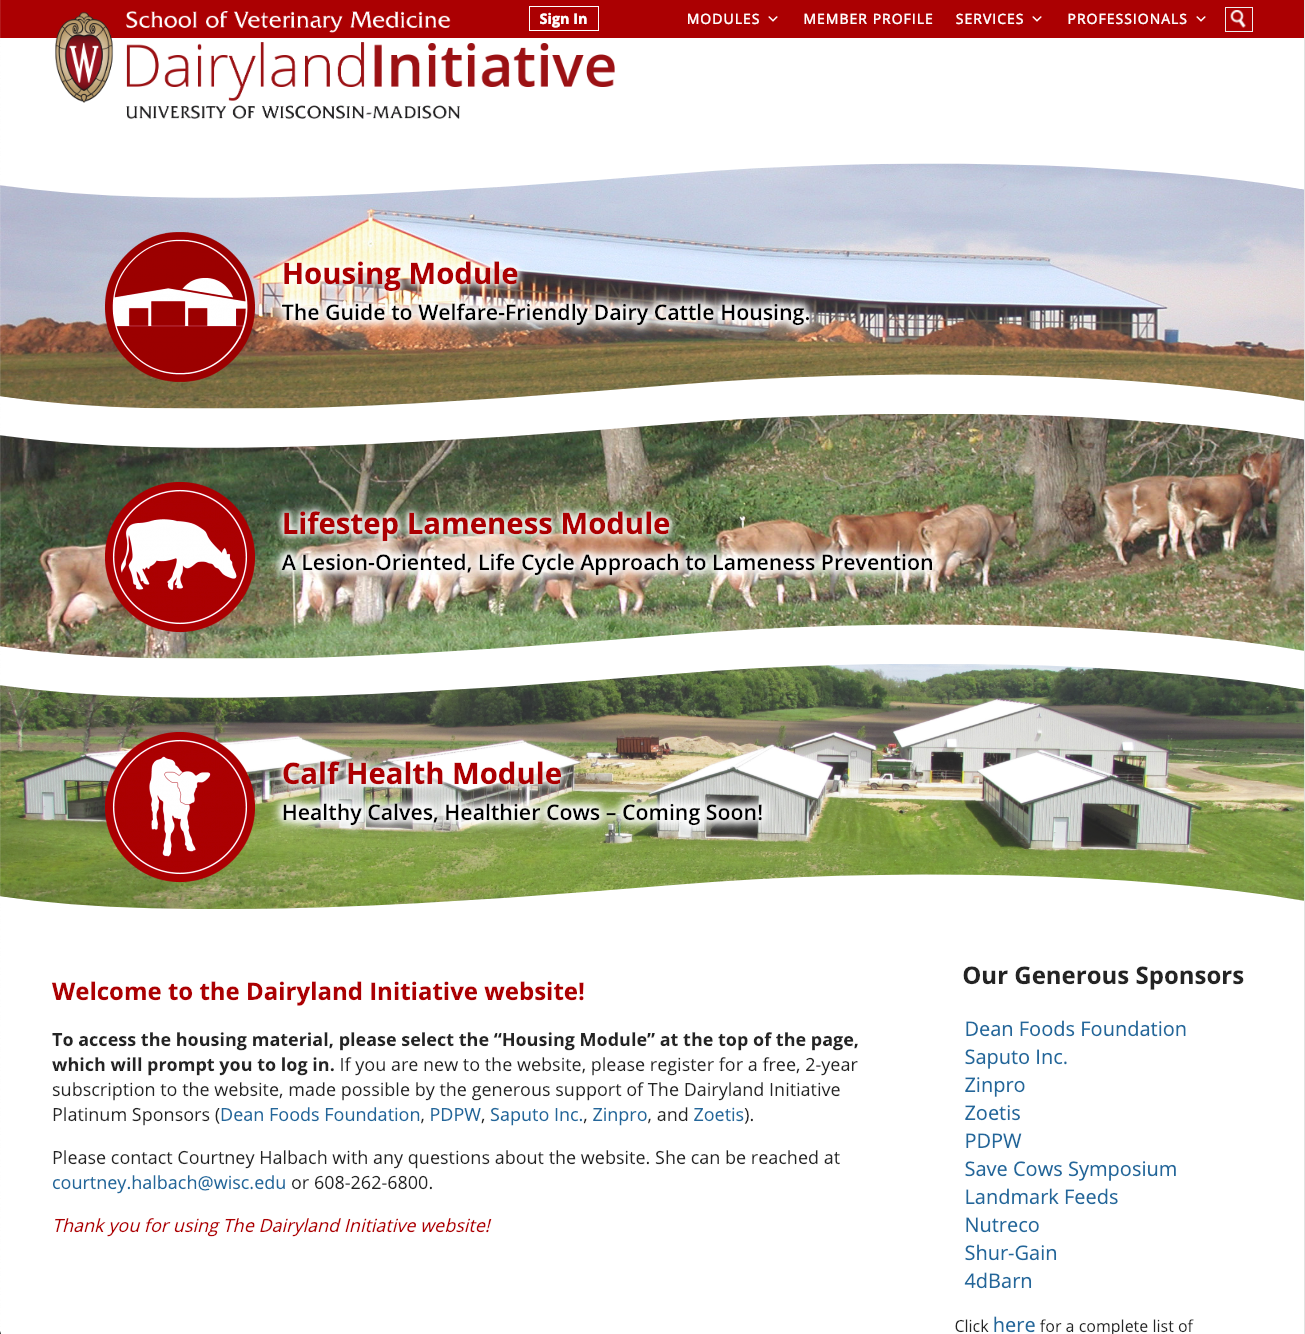 Dairyland Initiative Website